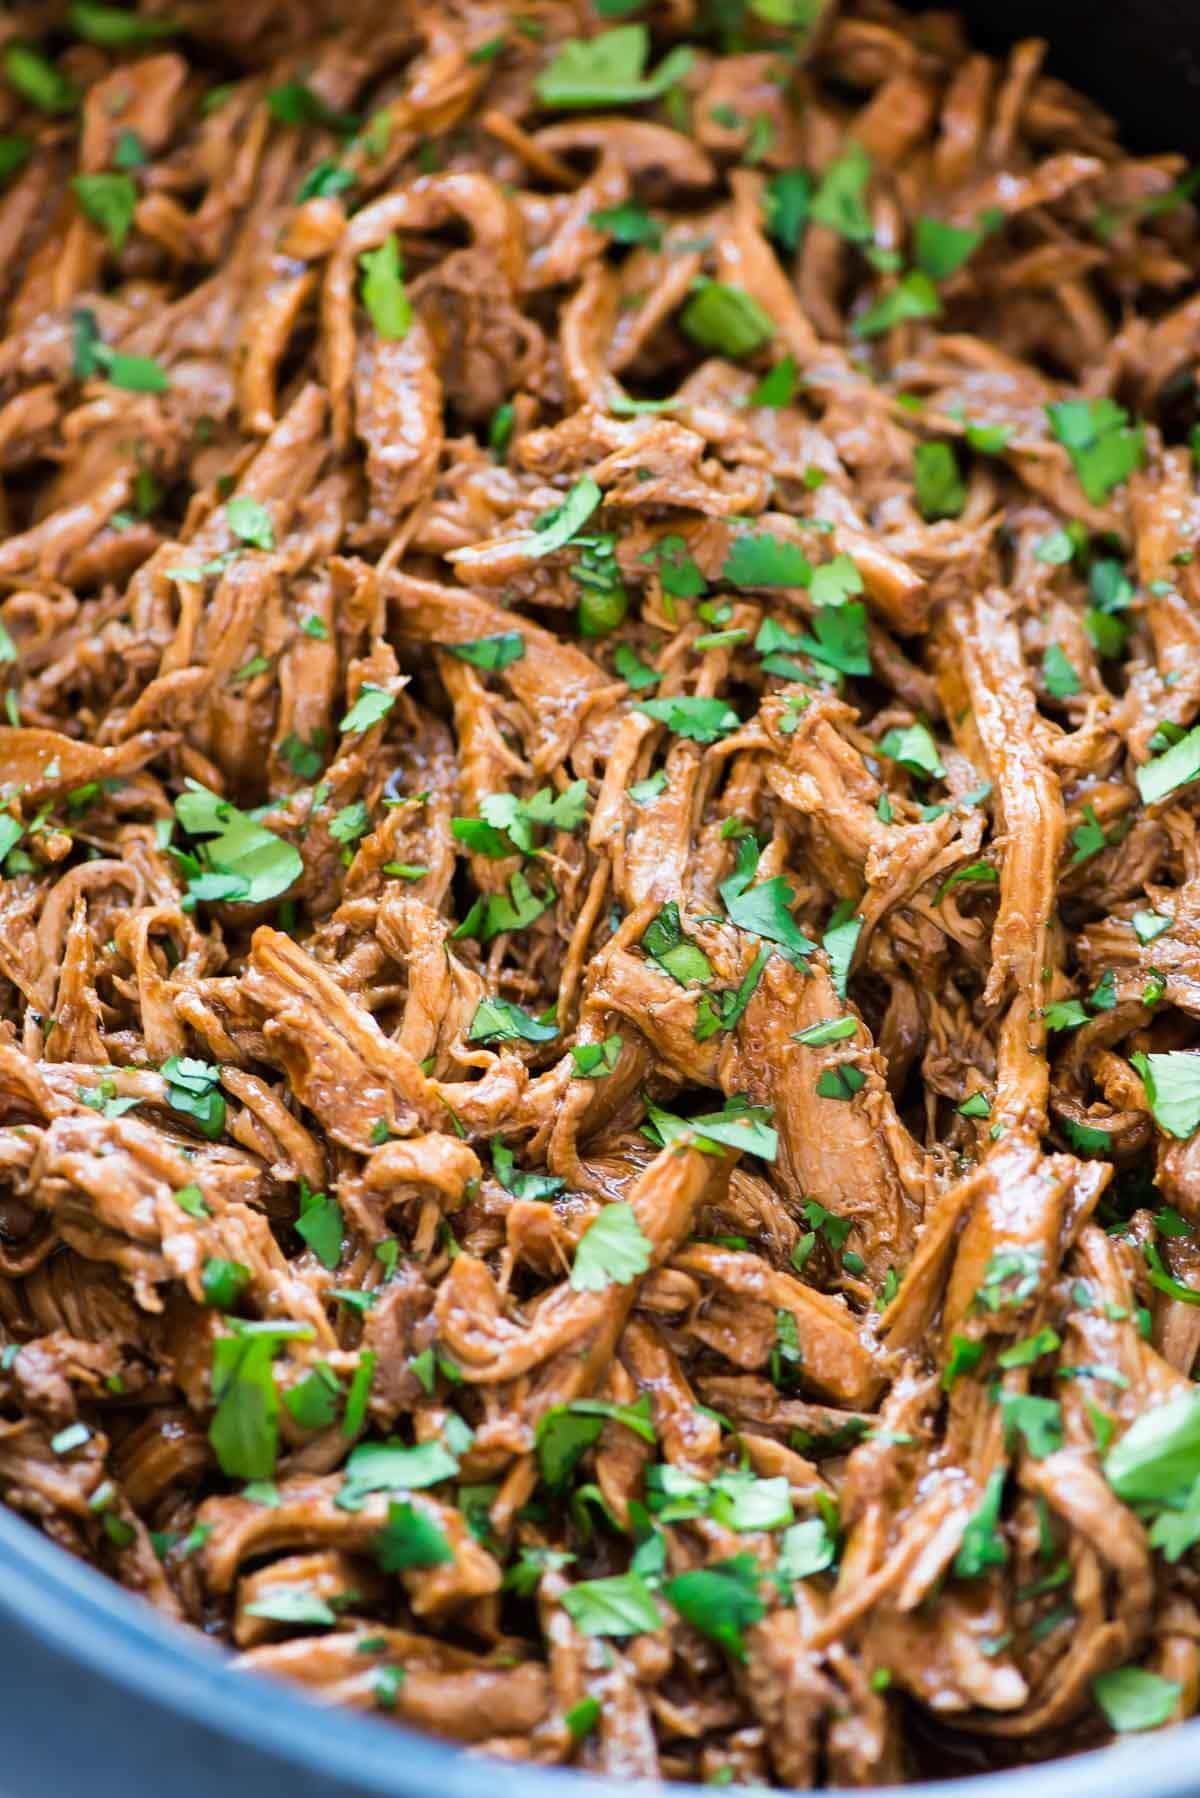 Slow Cooker Asian Pulled Pork Tacos with Slaw. This is our favorite slow cooker pulled pork recipe! Easy, delicious, and perfect for a crowd. Makes great leftovers too. Recipe at wellplated.com | @wellplated